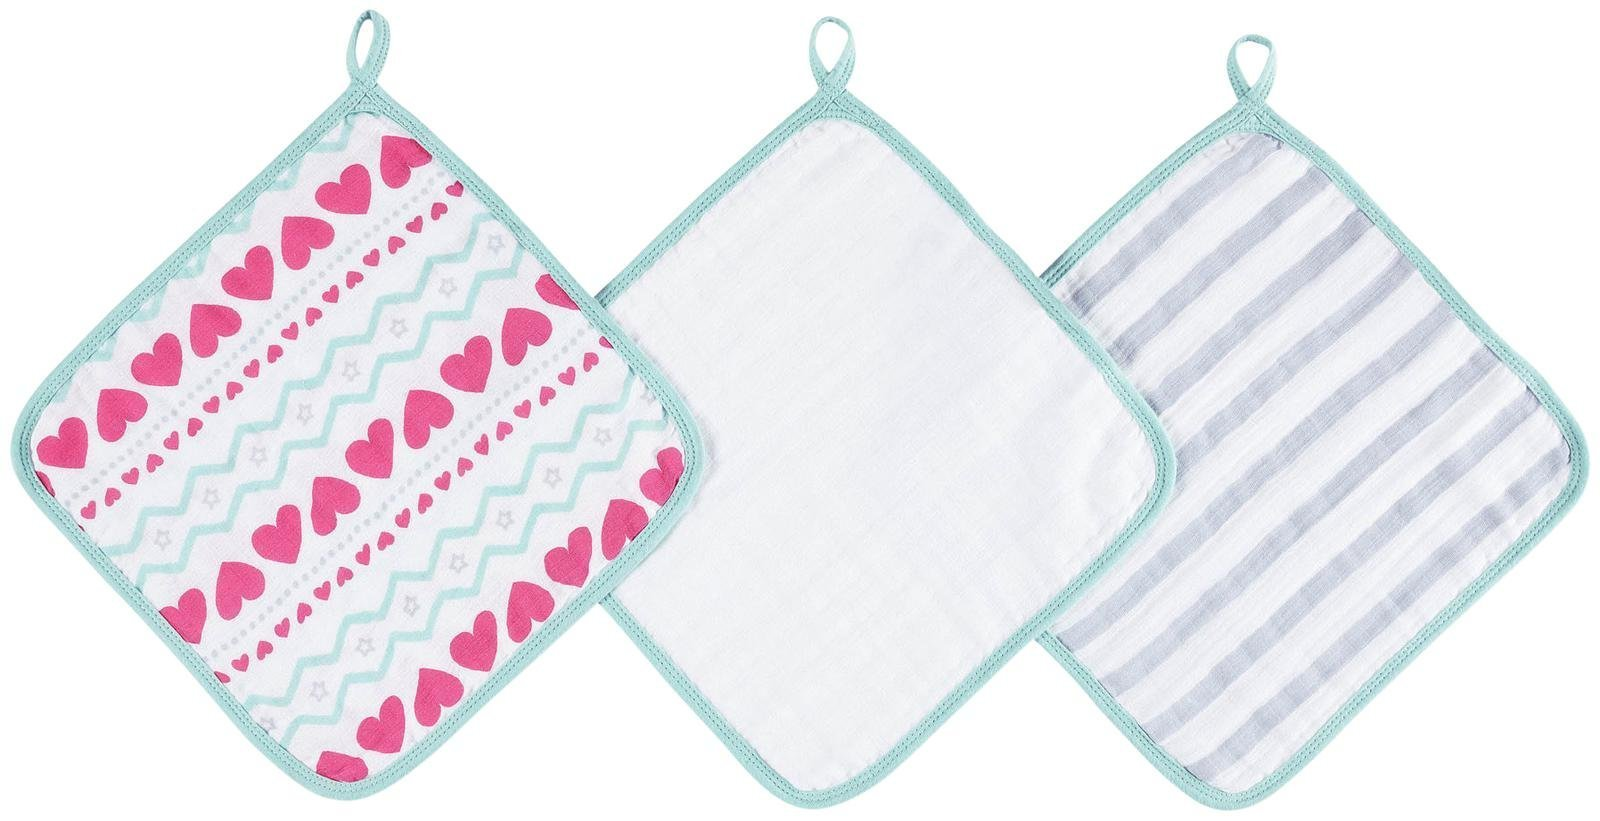 aden by aden + anais washcloth set 3 pack, light hearted by Aden